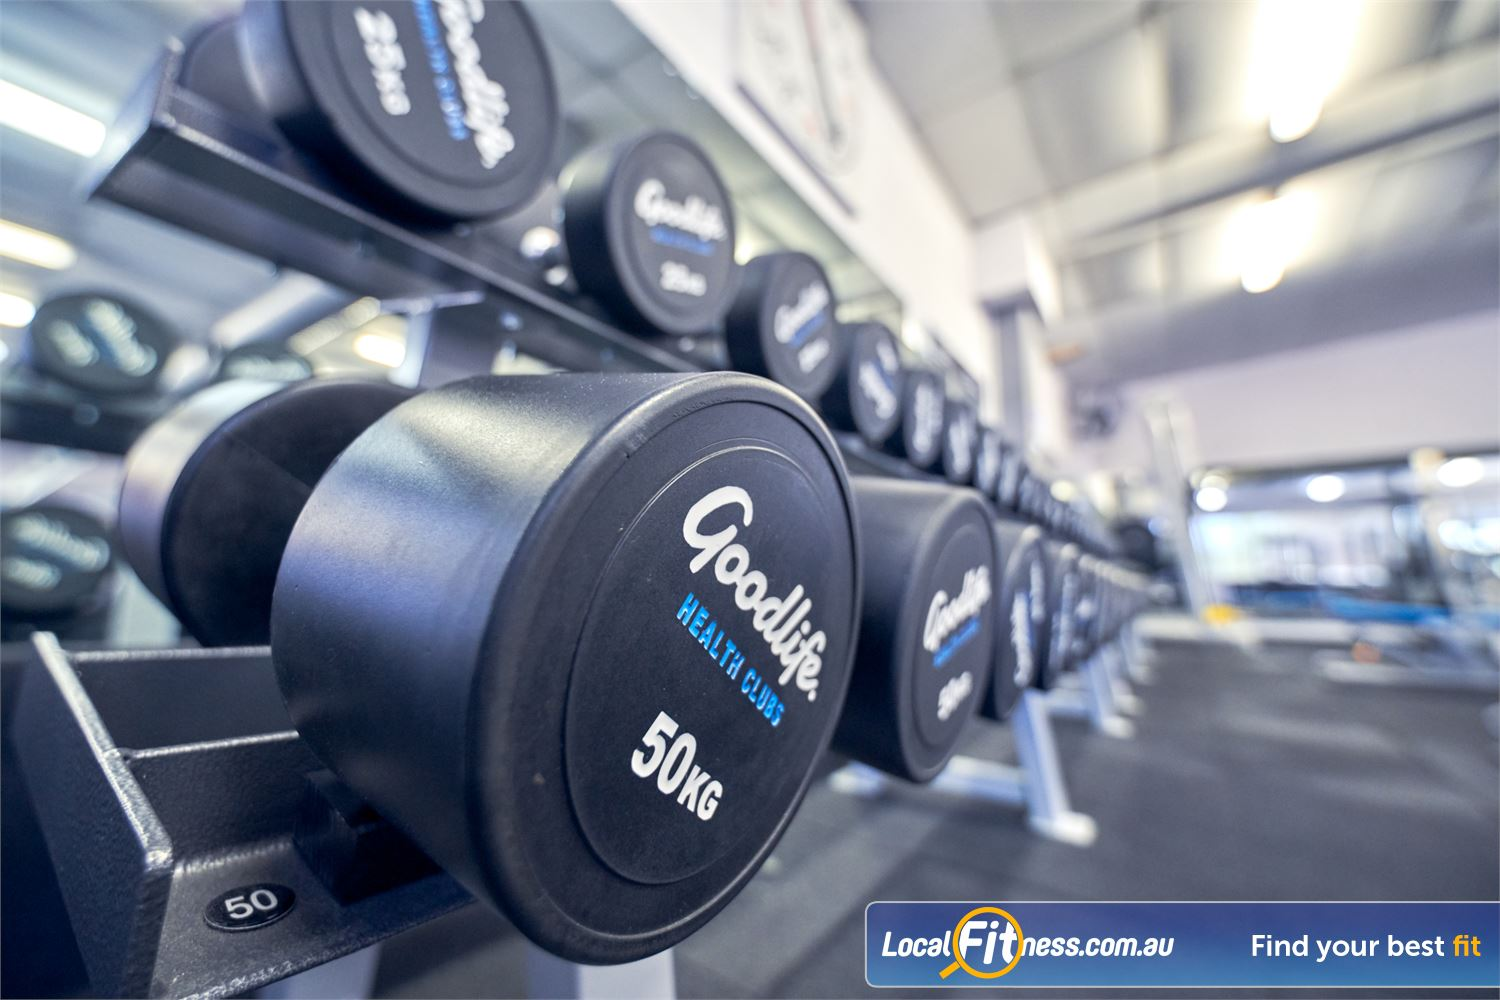 Goodlife Health Clubs Near Canterbury Our Balywn gym is fully equipped with free weights and dumbbells up to 50kg.